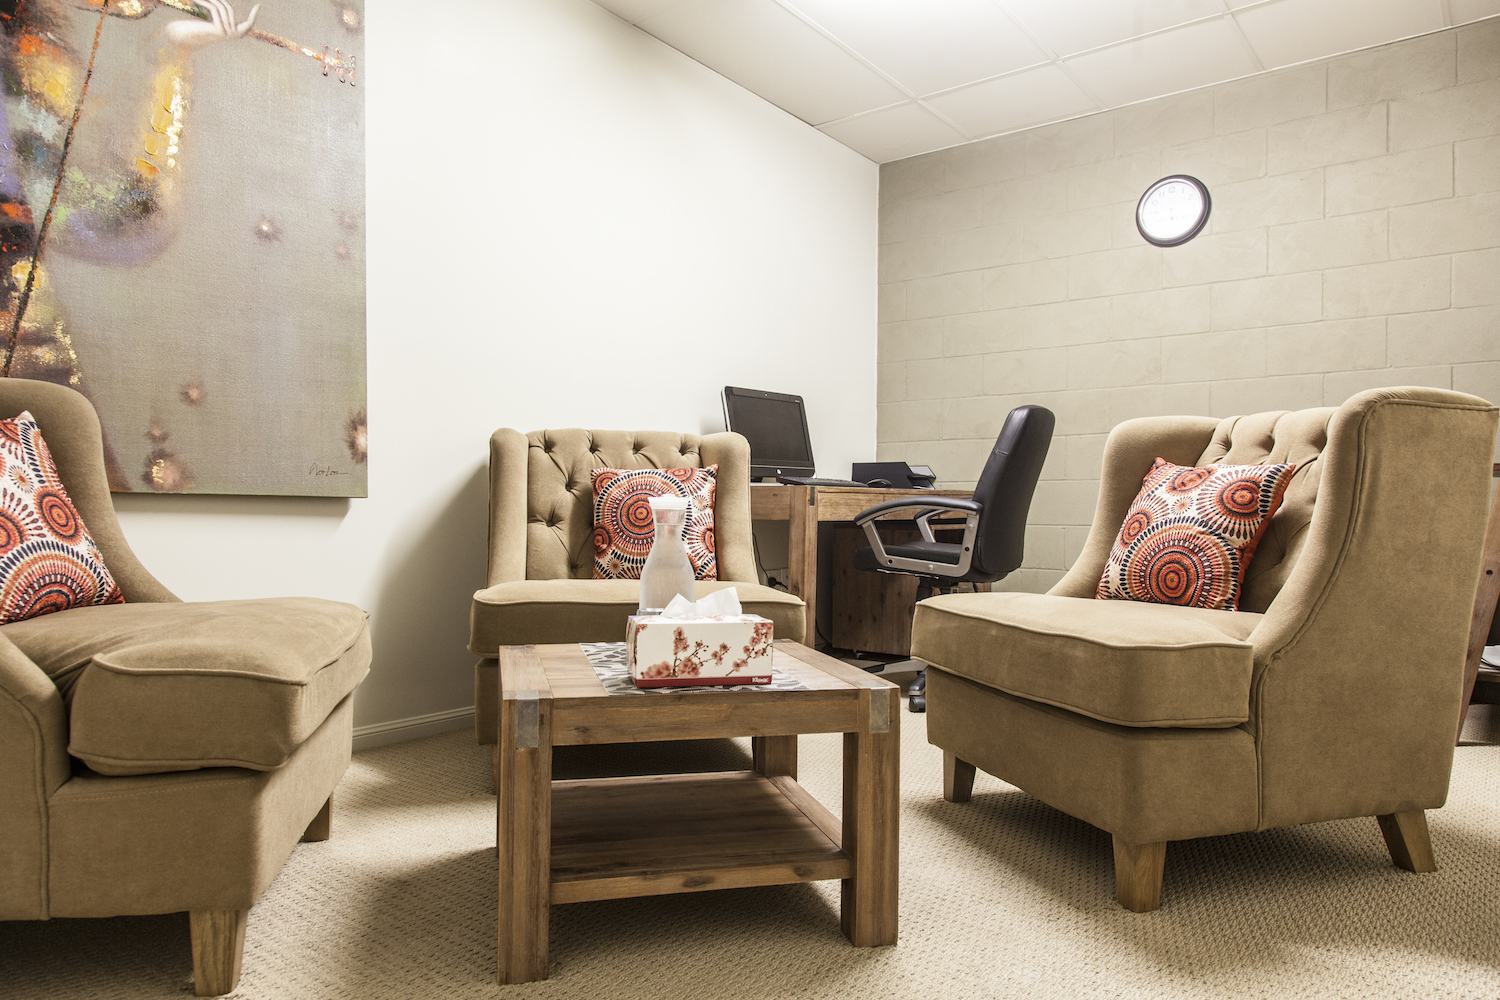 South East Psychology Therapy Room